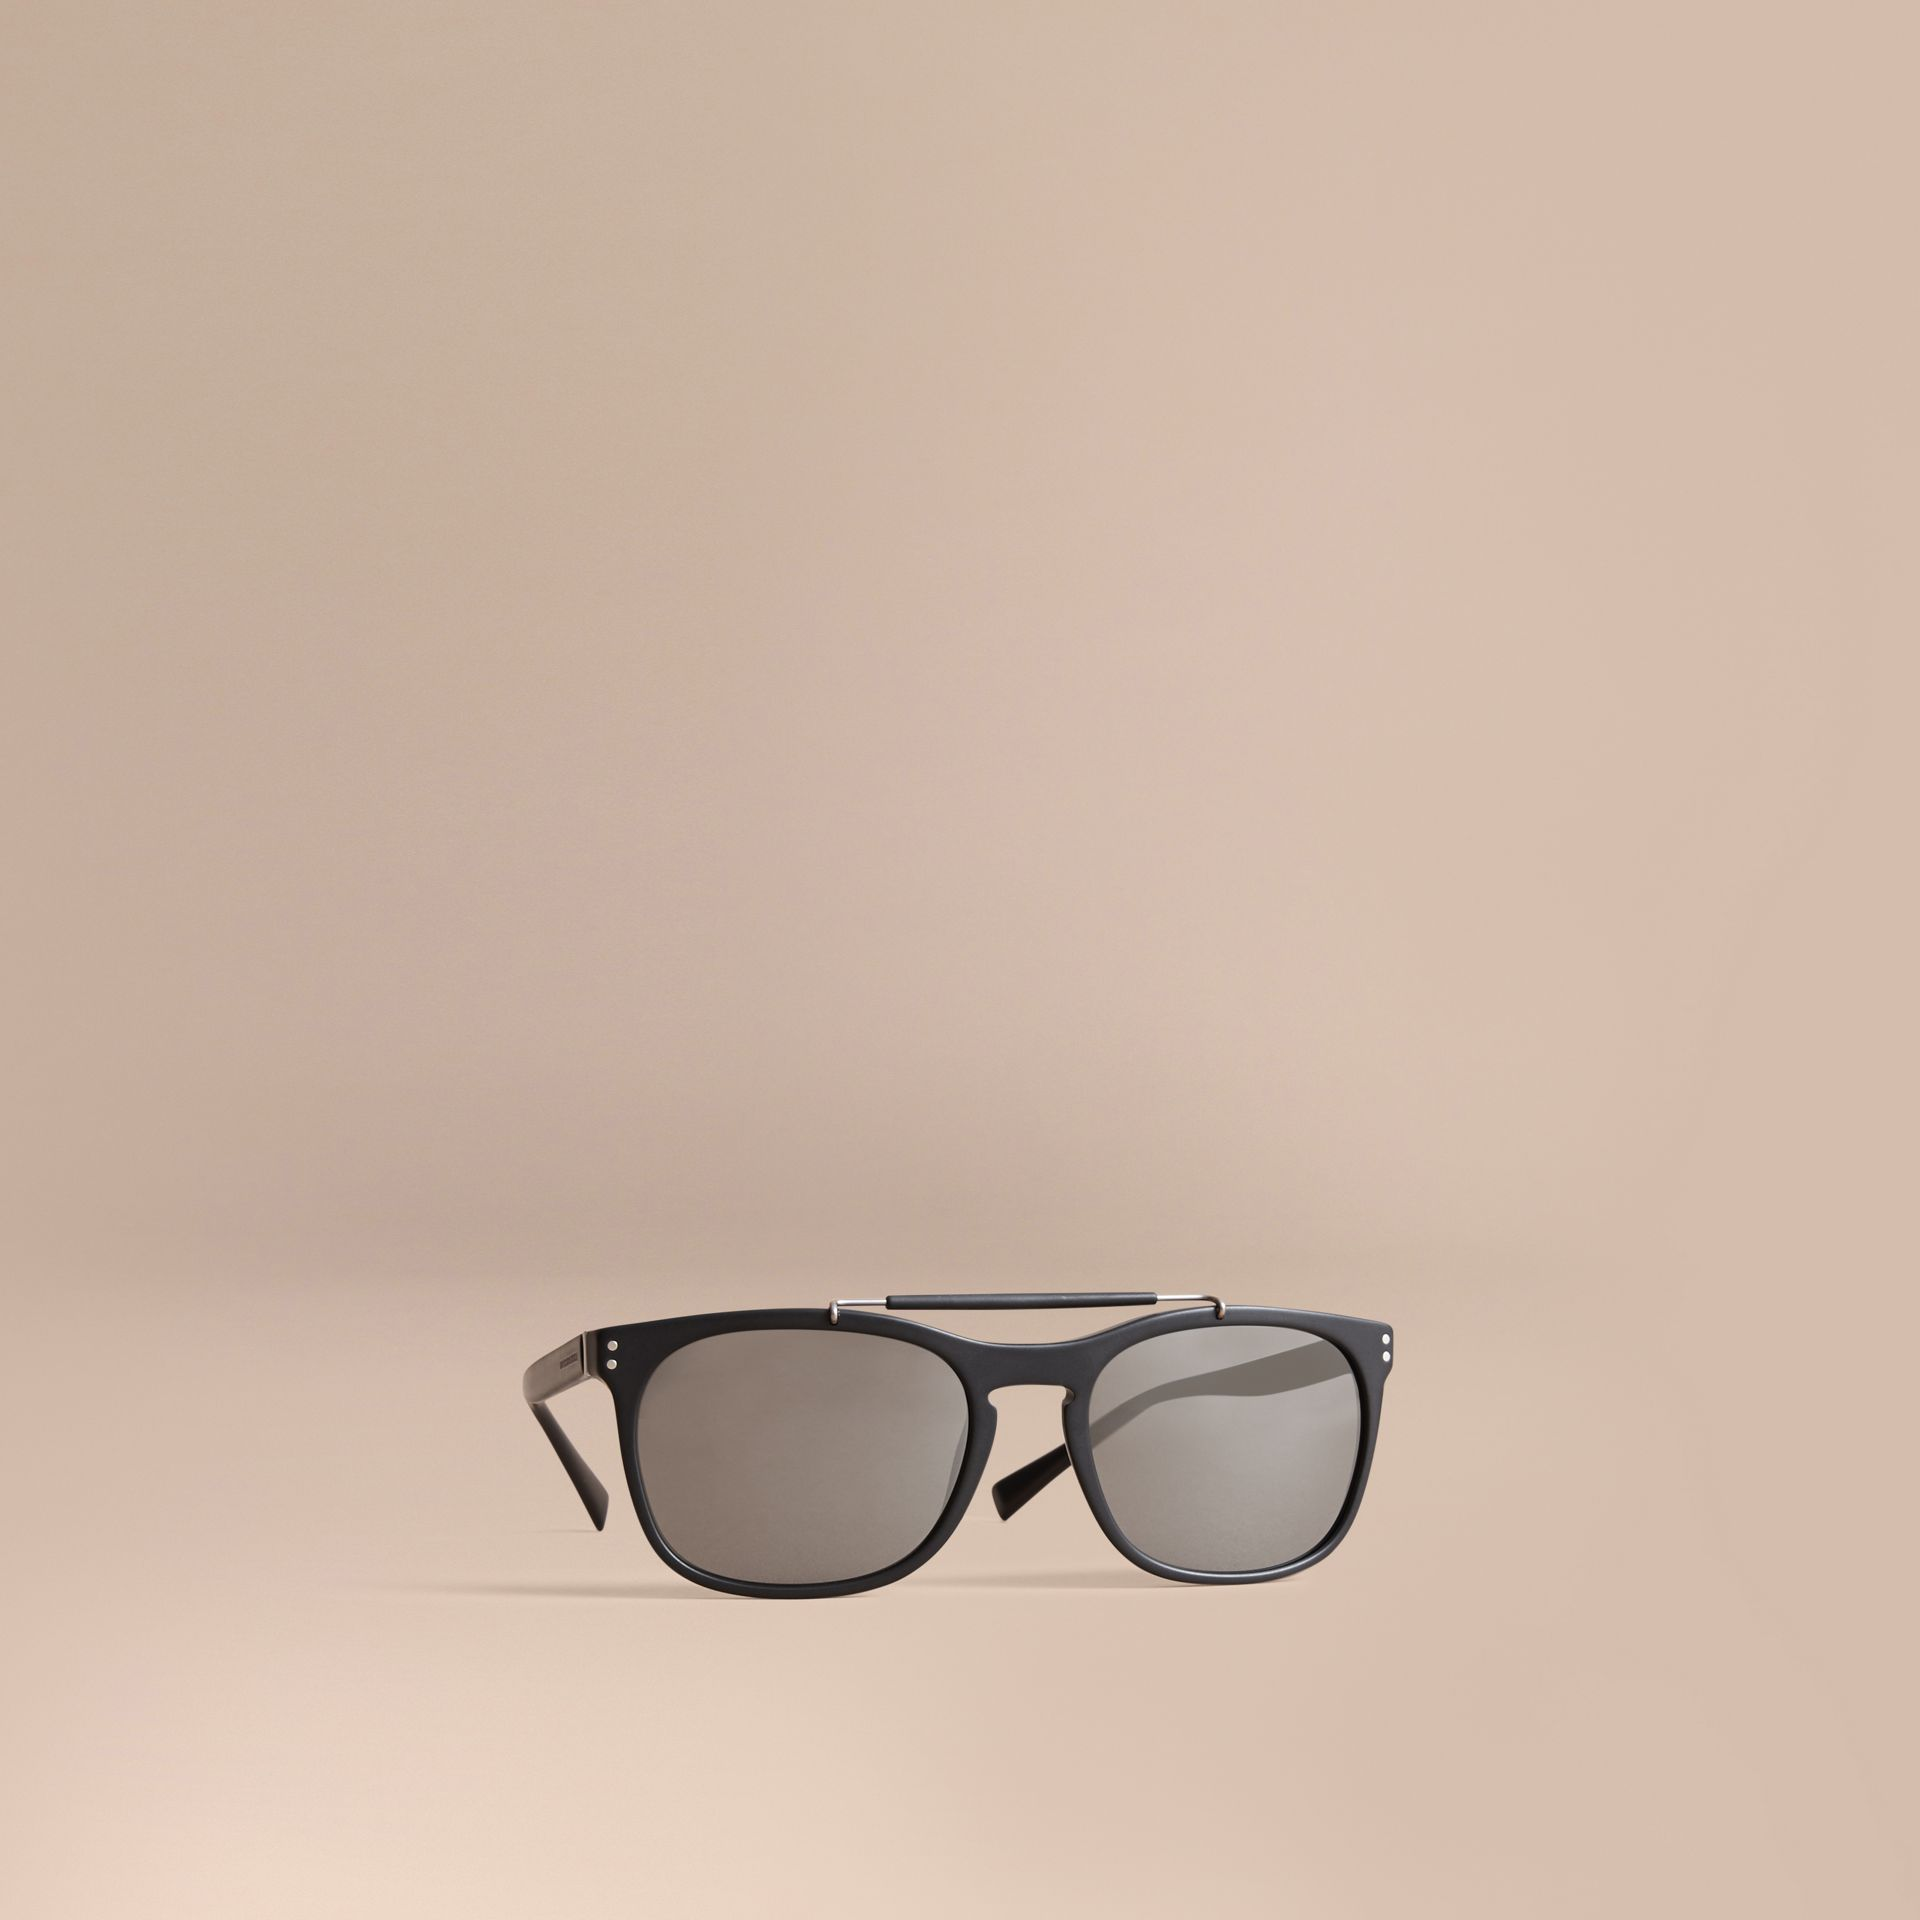 Top Bar Square Frame Sunglasses in Black - Men | Burberry - gallery image 0